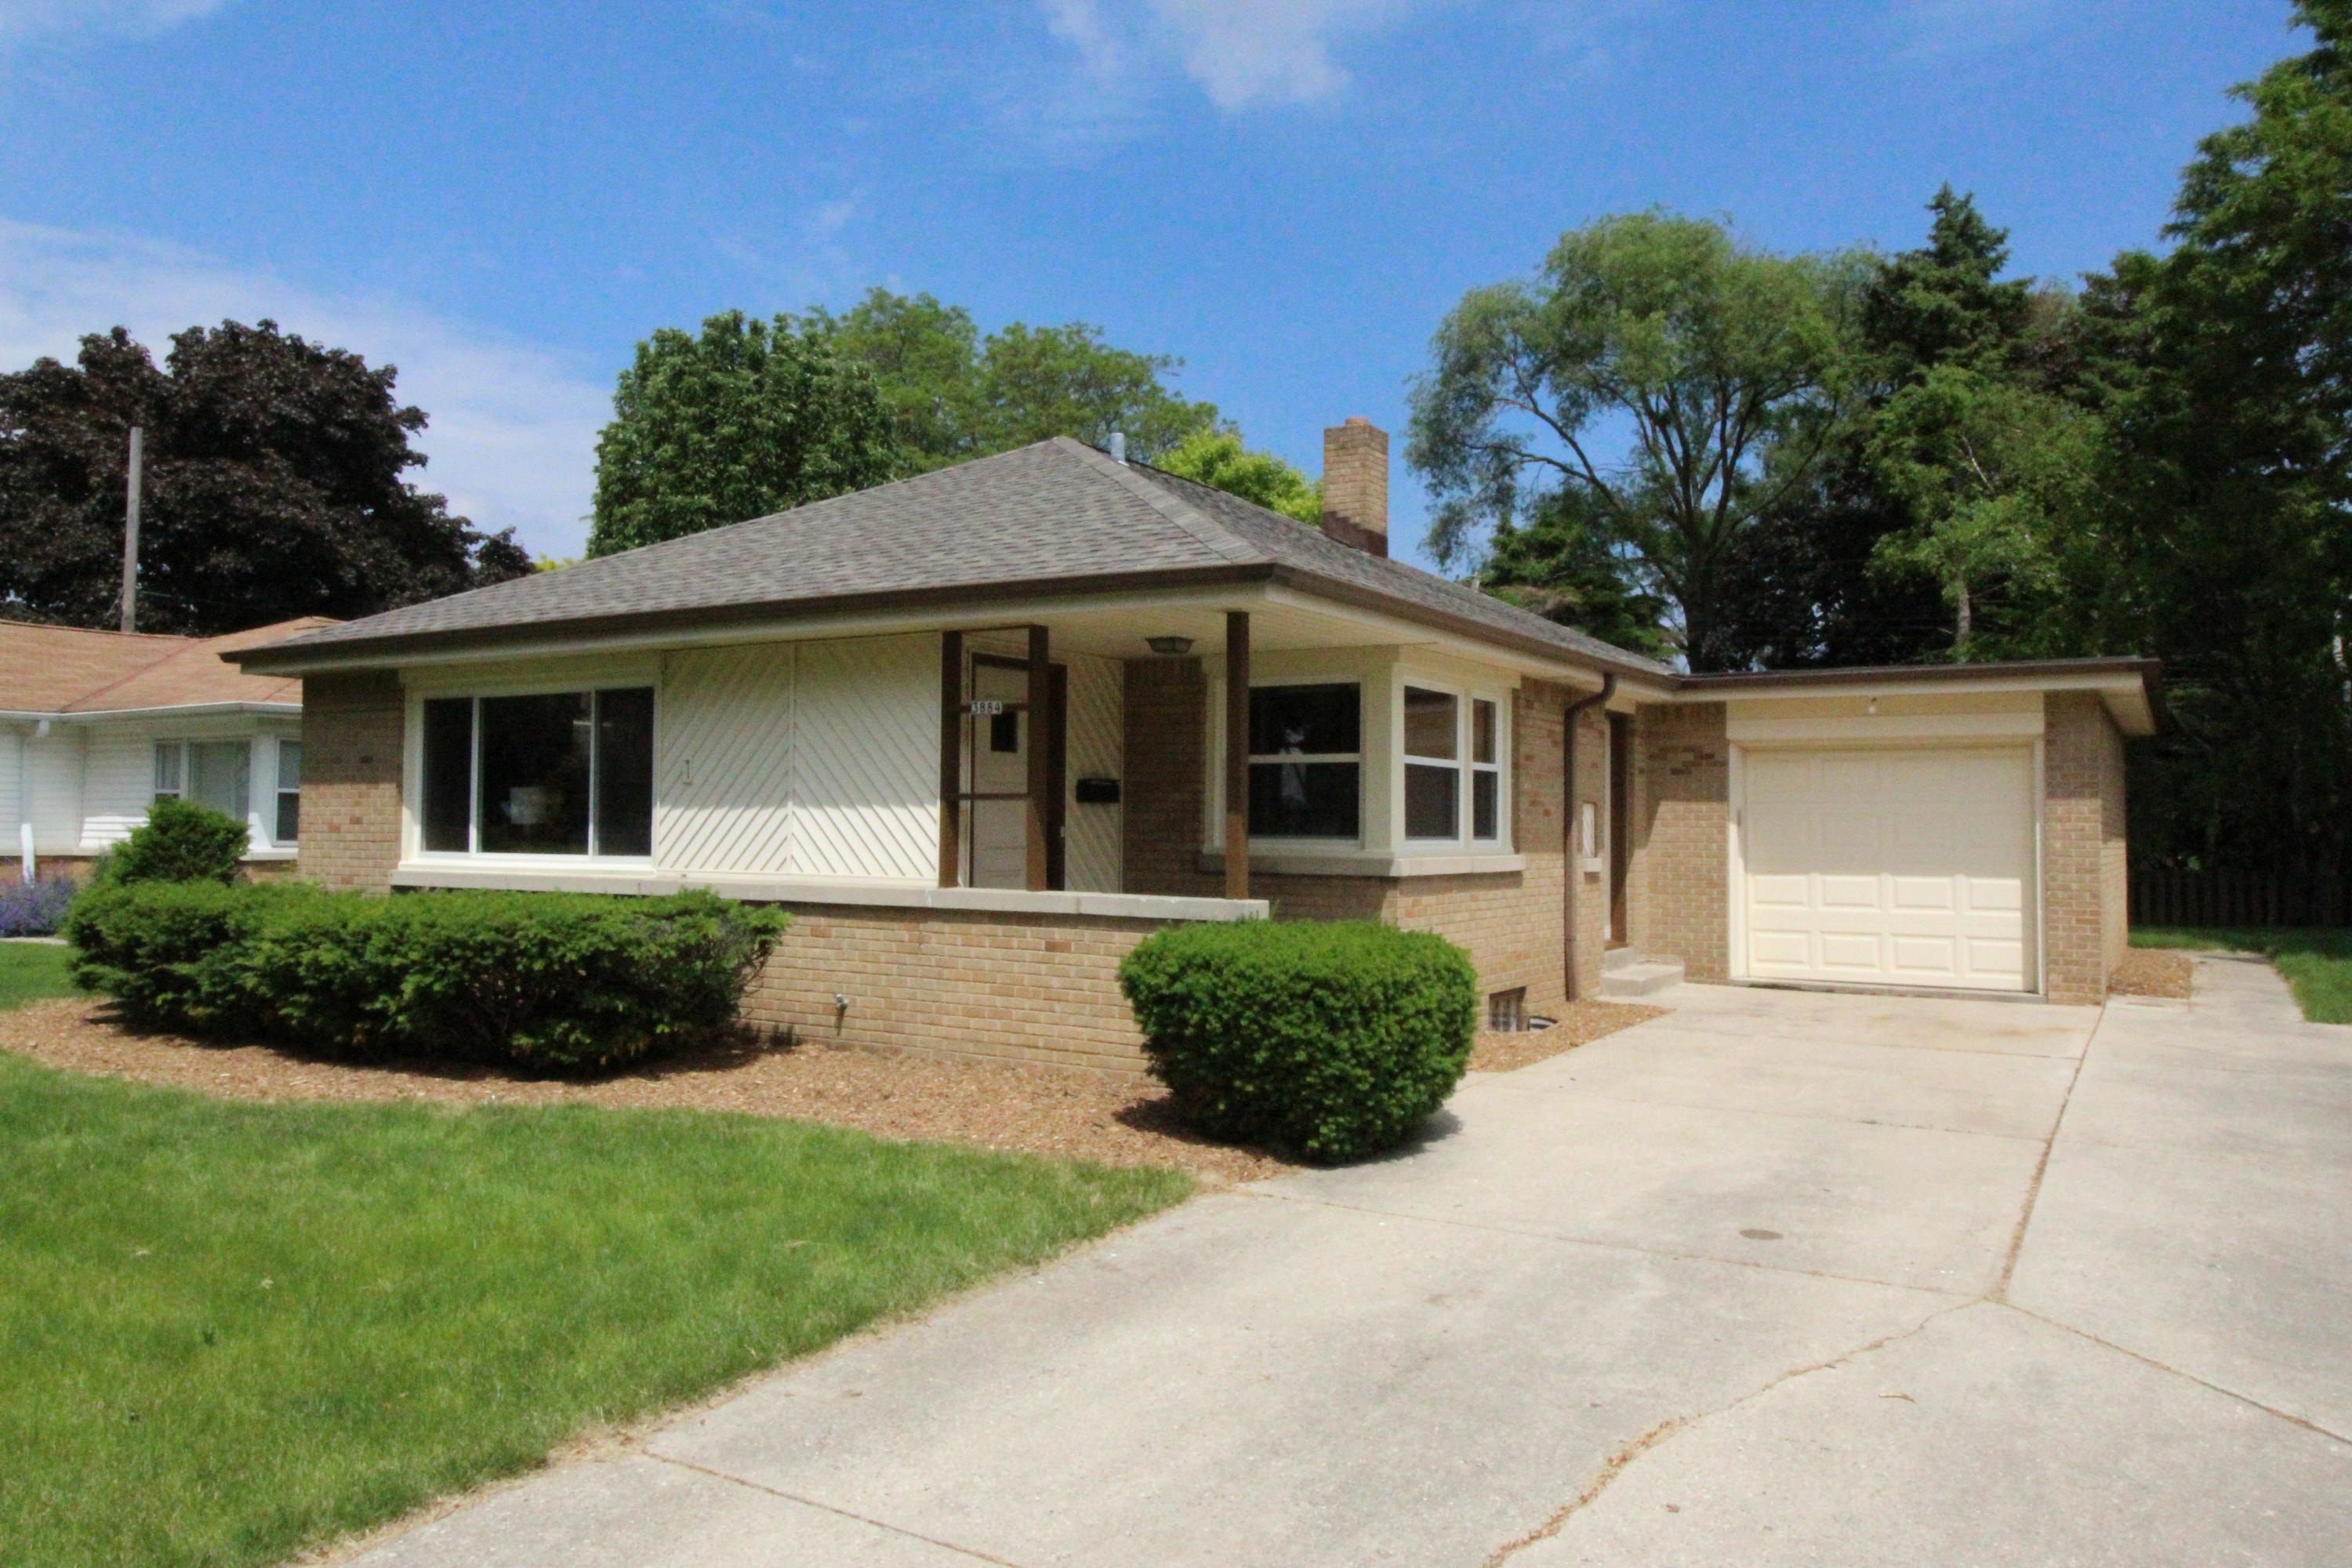 3884 86th St, Milwaukee, Wisconsin 53222, 3 Bedrooms Bedrooms, 6 Rooms Rooms,1 BathroomBathrooms,Single-Family,For Sale,86th St,1643508